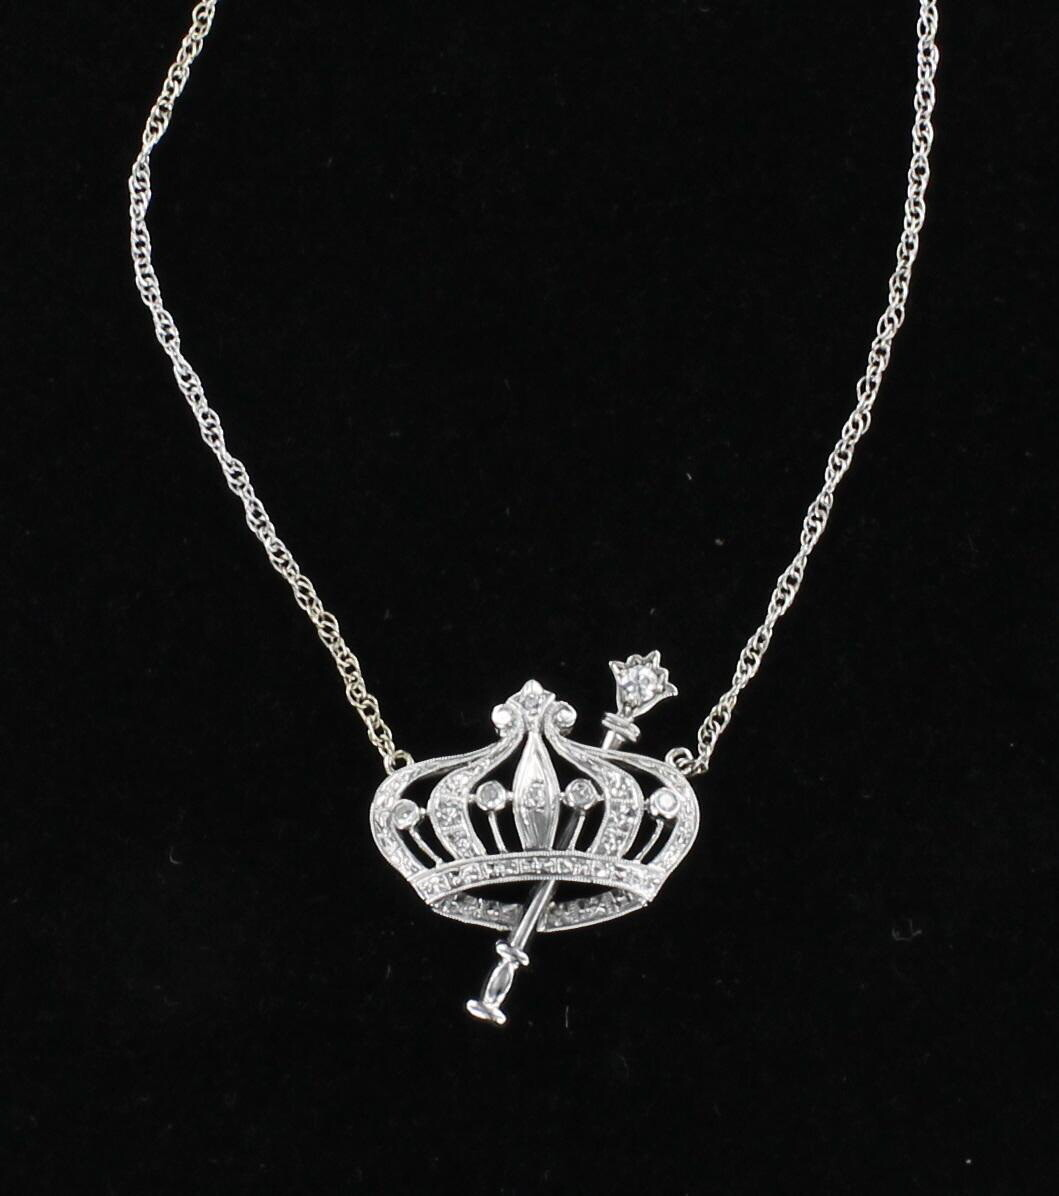 14KT CROWN PENDANT NECKLACE